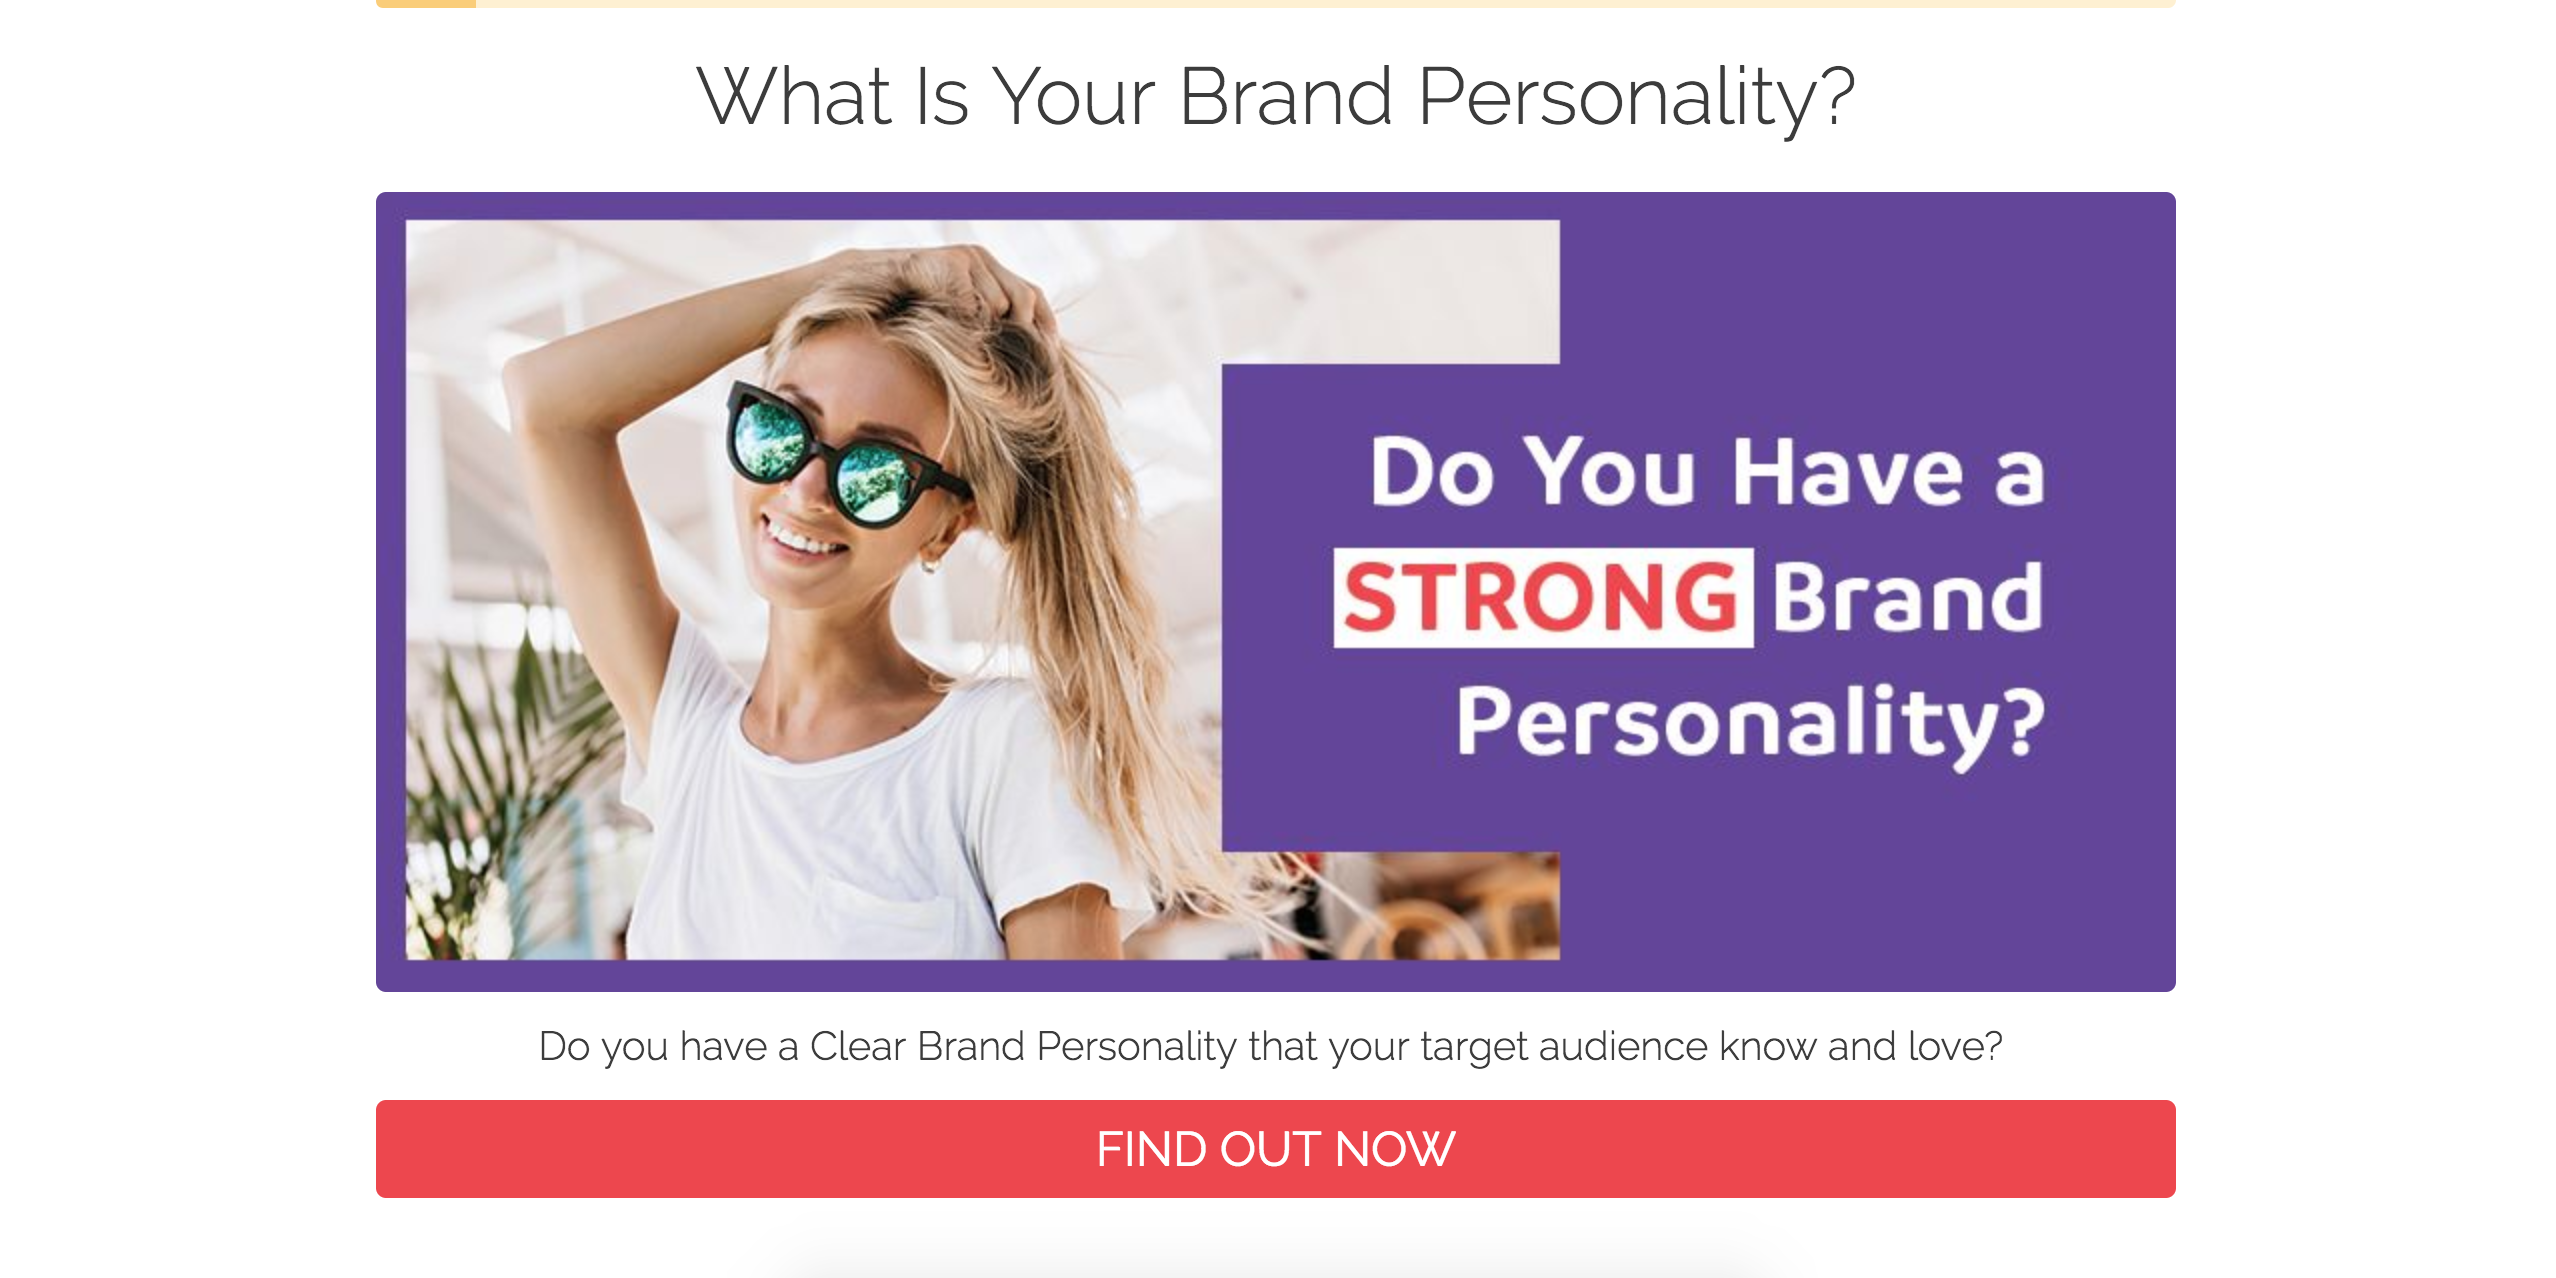 interact-brand-personality-quiz